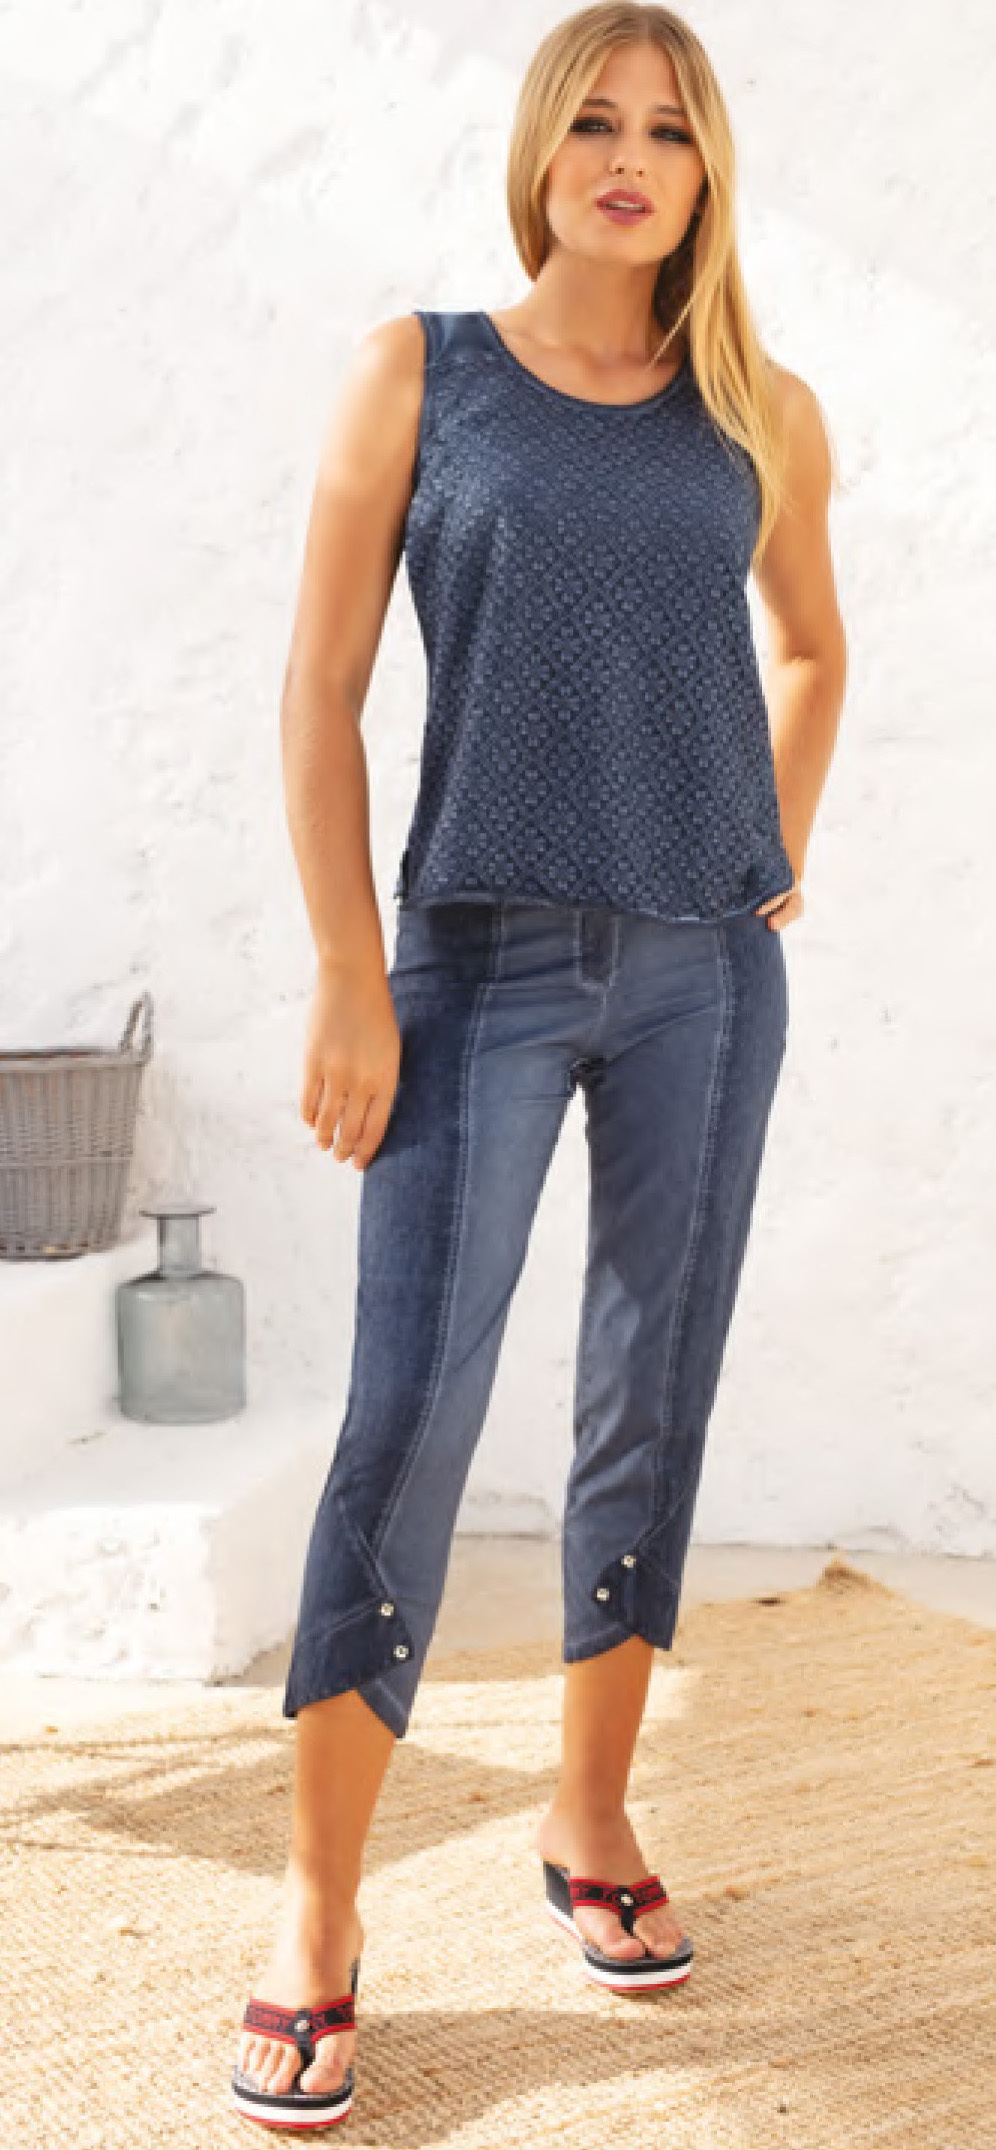 Maloka: Shades of Blue Linen Cropped Pant (2 Left!)